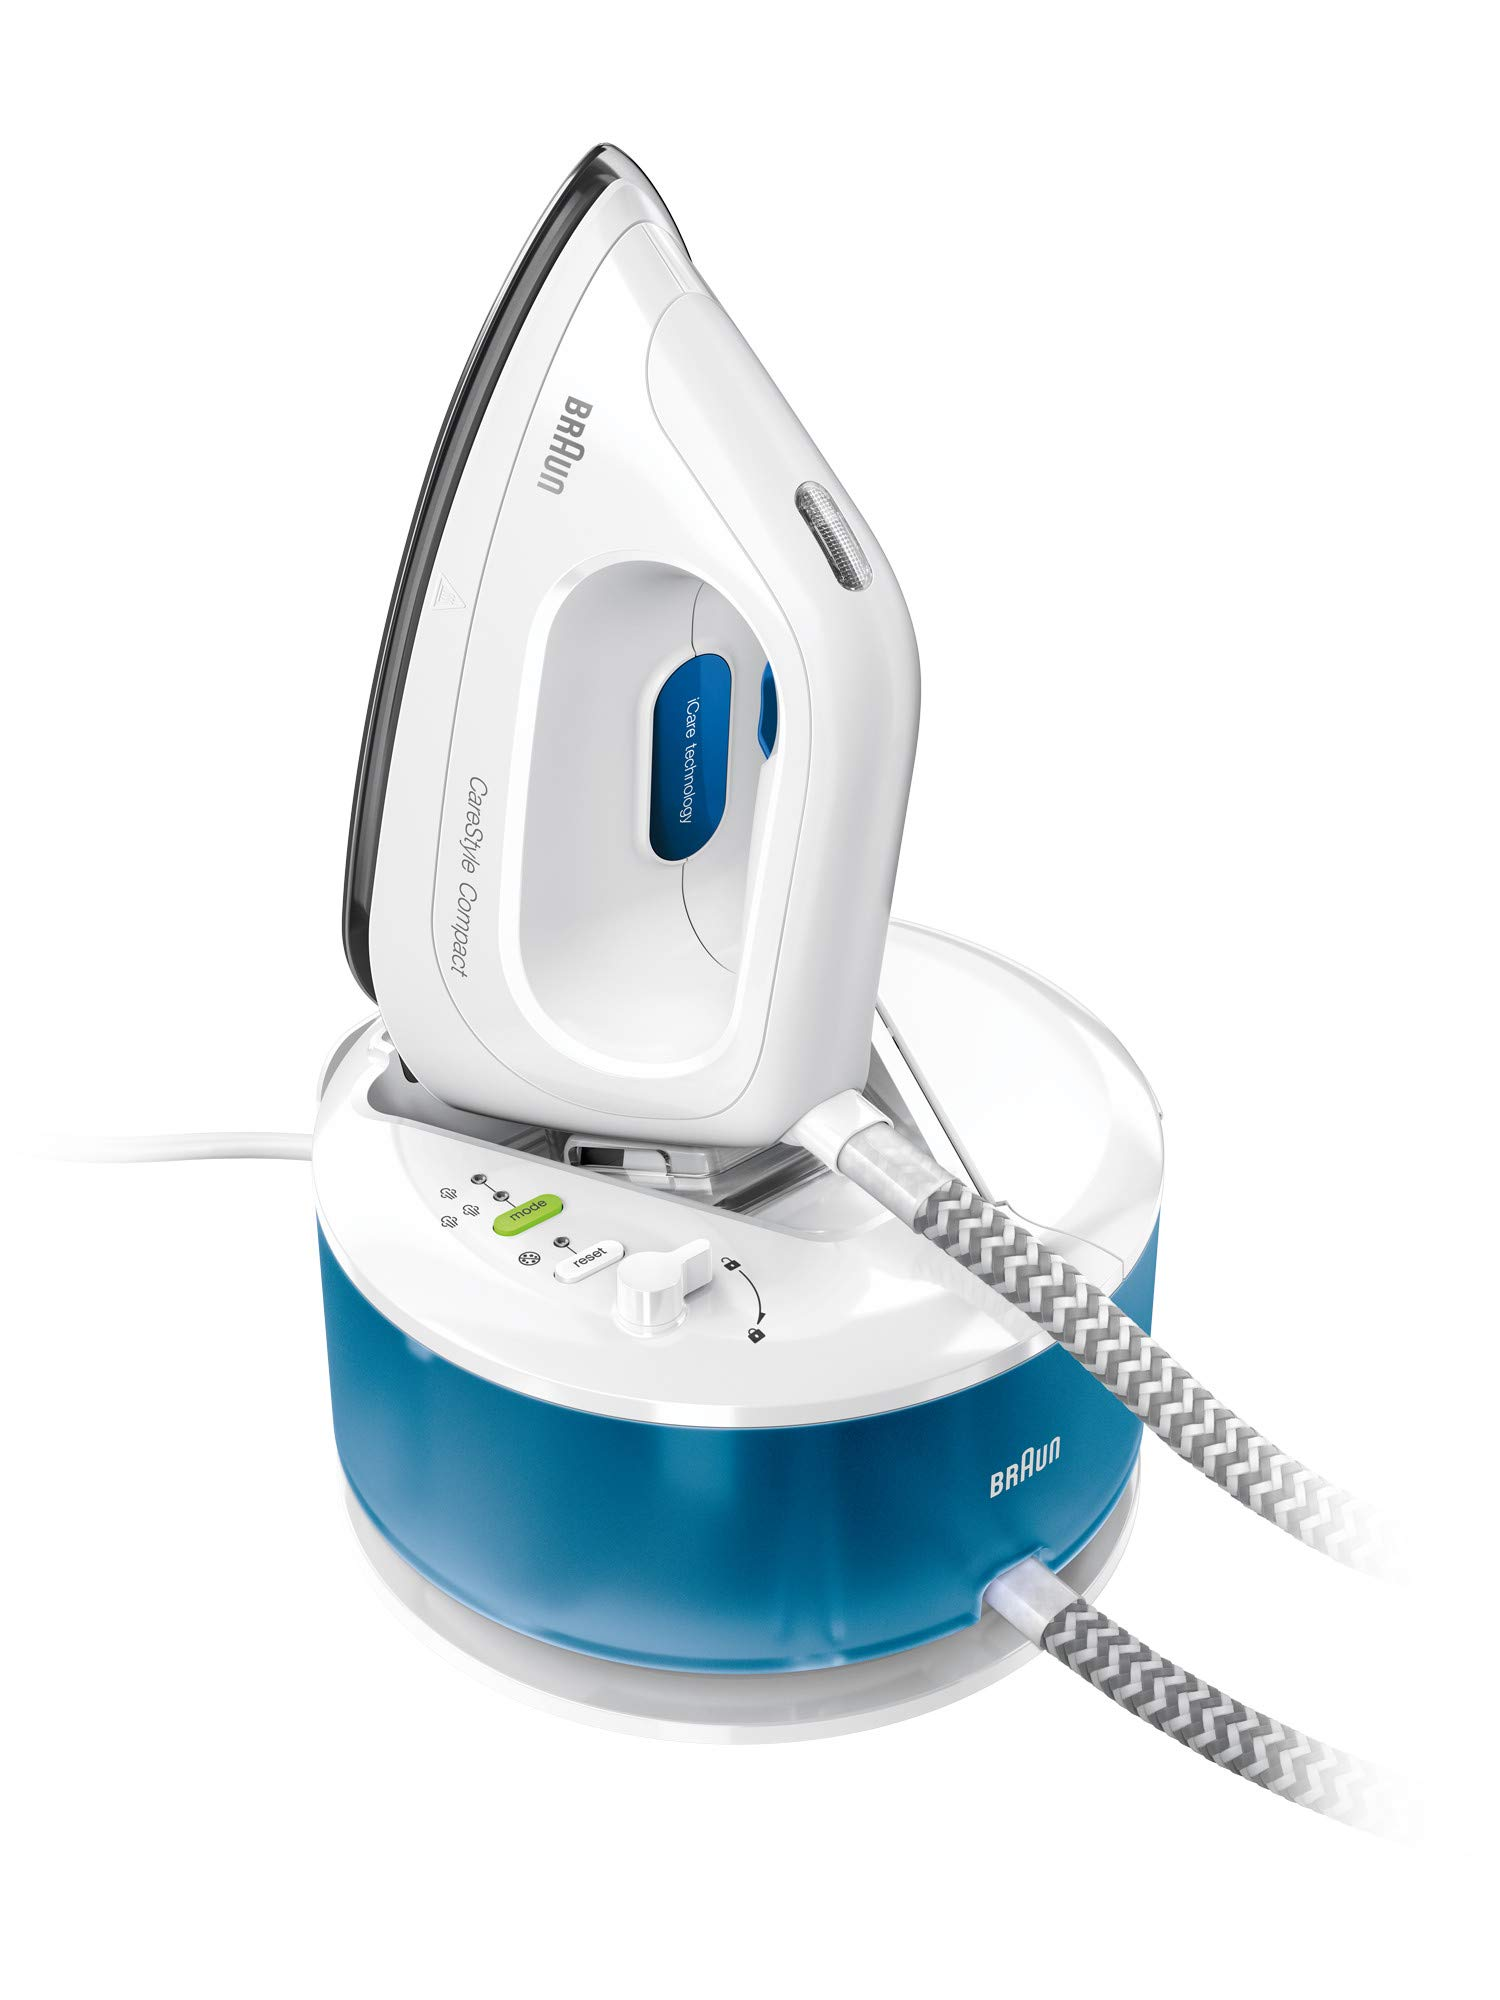 Braun CareStyle Compact IS2043 Dampfbügelstation | 2.220 Watt | 5 bar | Dampfstoß 300g/min |1,3 Liter Wassertank